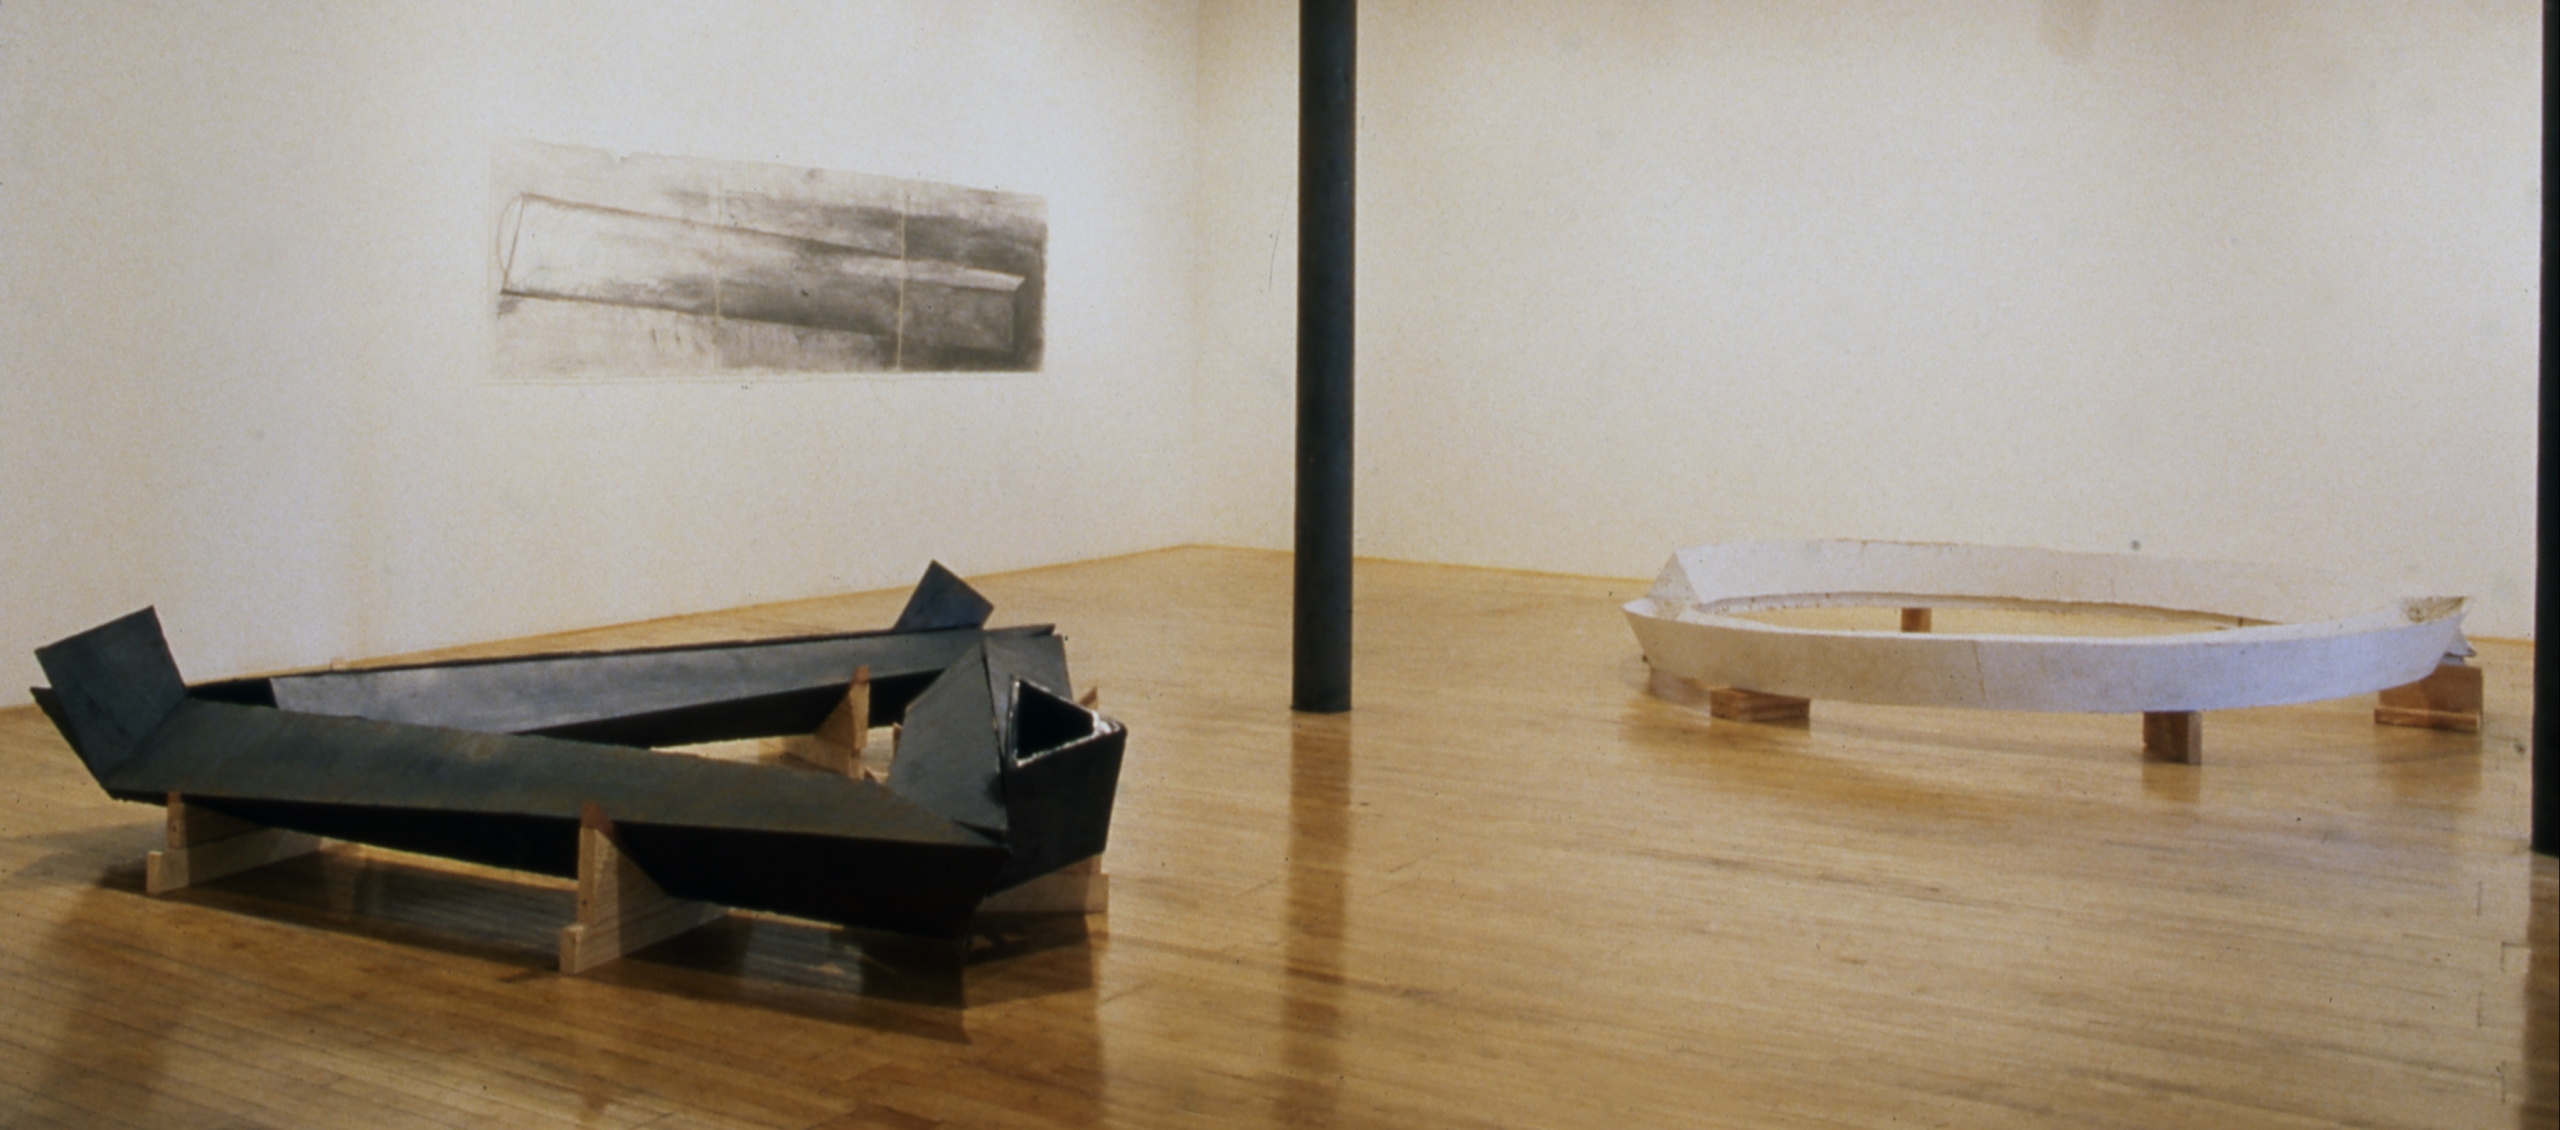 Installation view at Rhona Hoffman Gallery, Bruce Nauman, New Iron Casting, Plaster, and Drawing